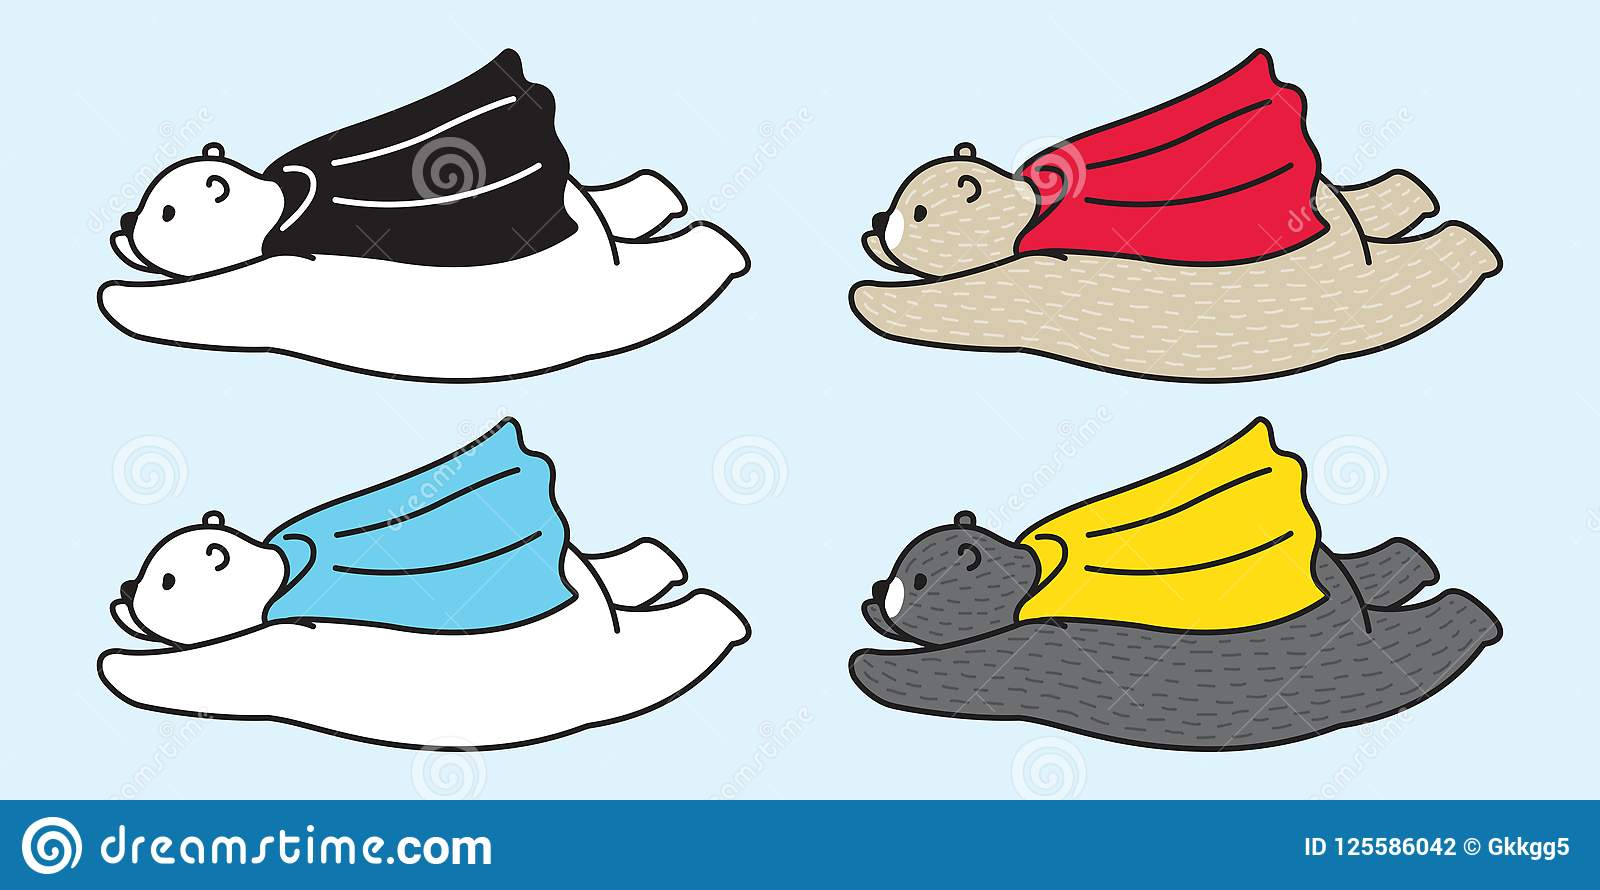 Bear vector logo icon polar bear panda flying capes illustration cartoon doodle